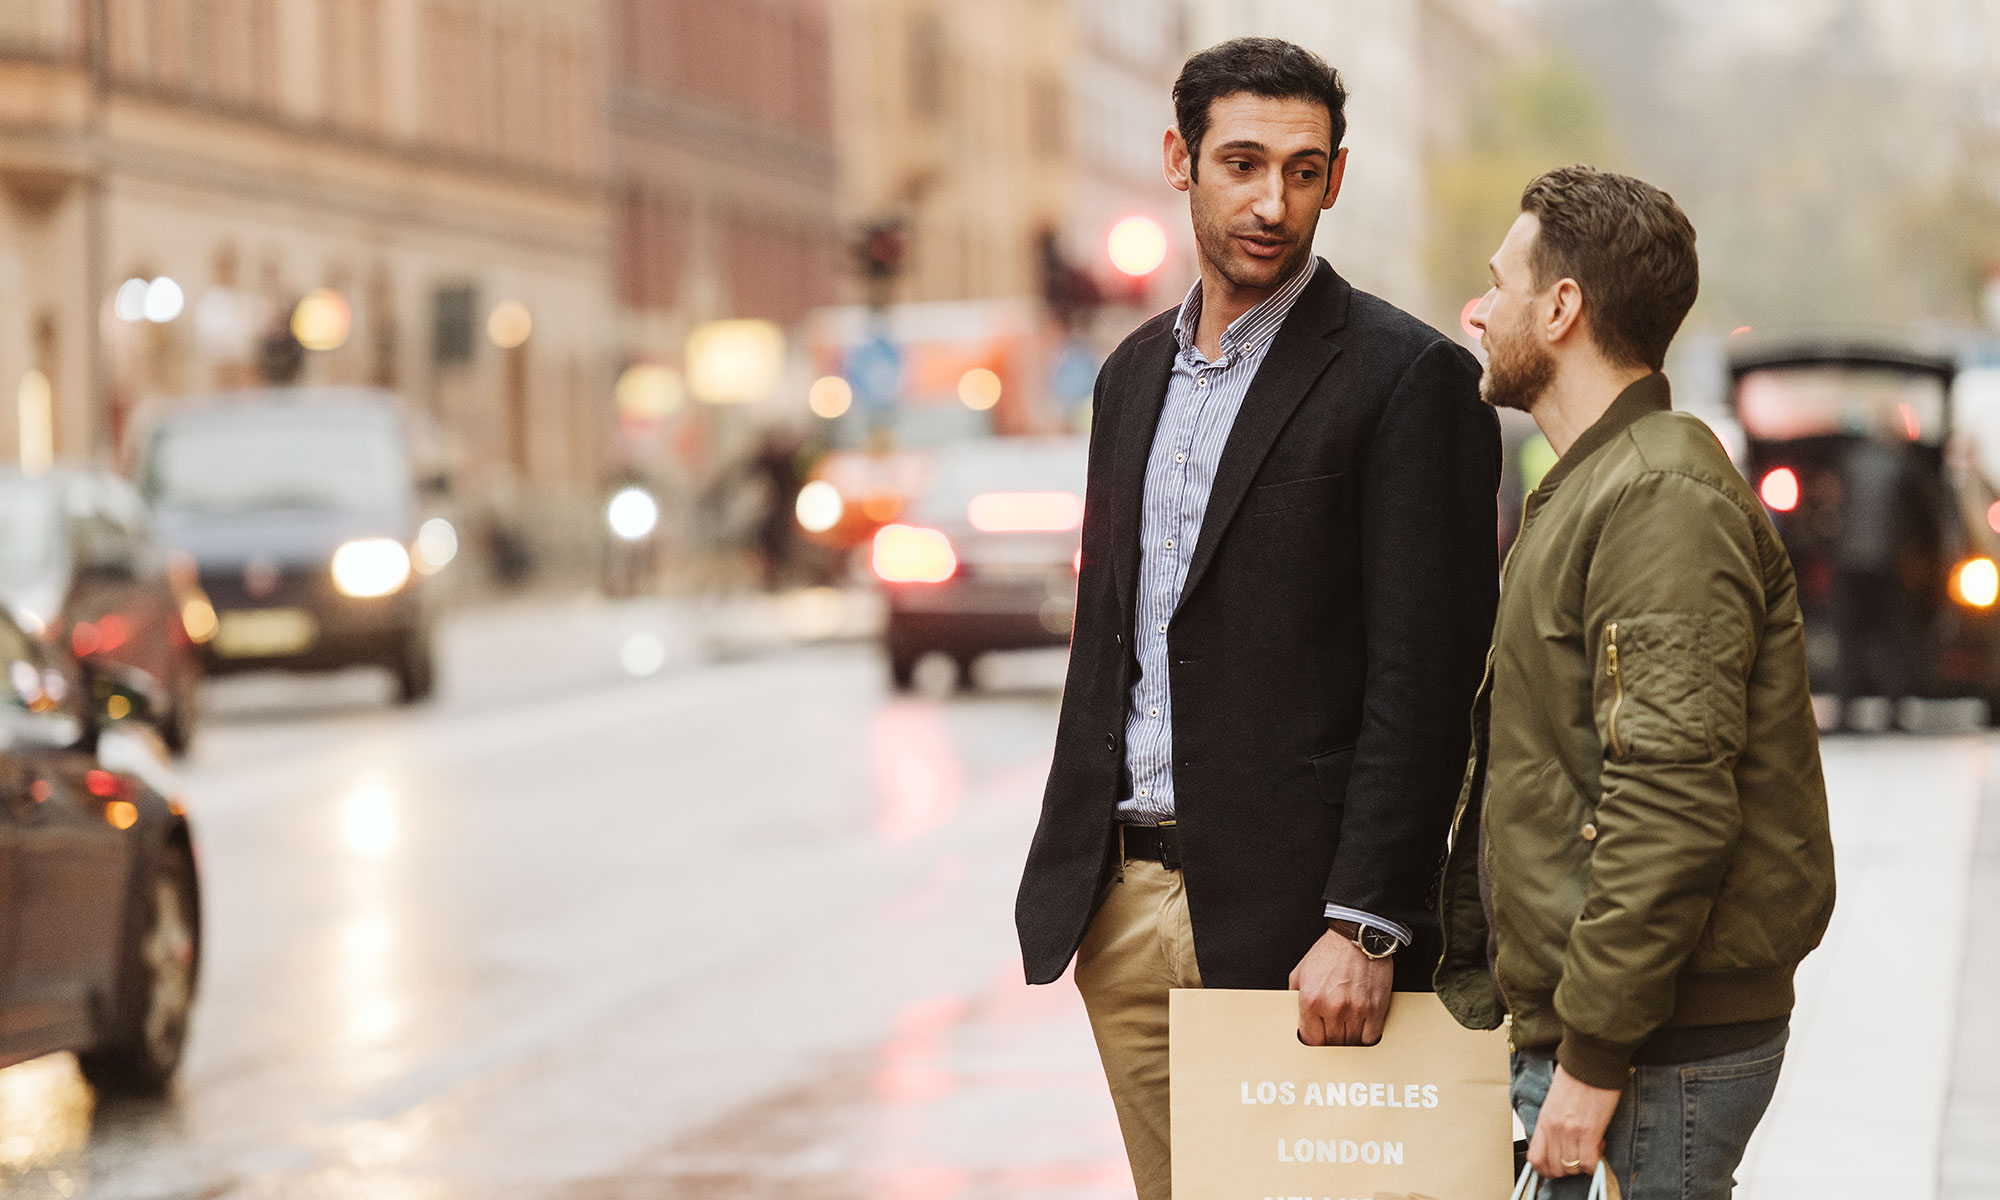 Two men with shopping bags in the city.